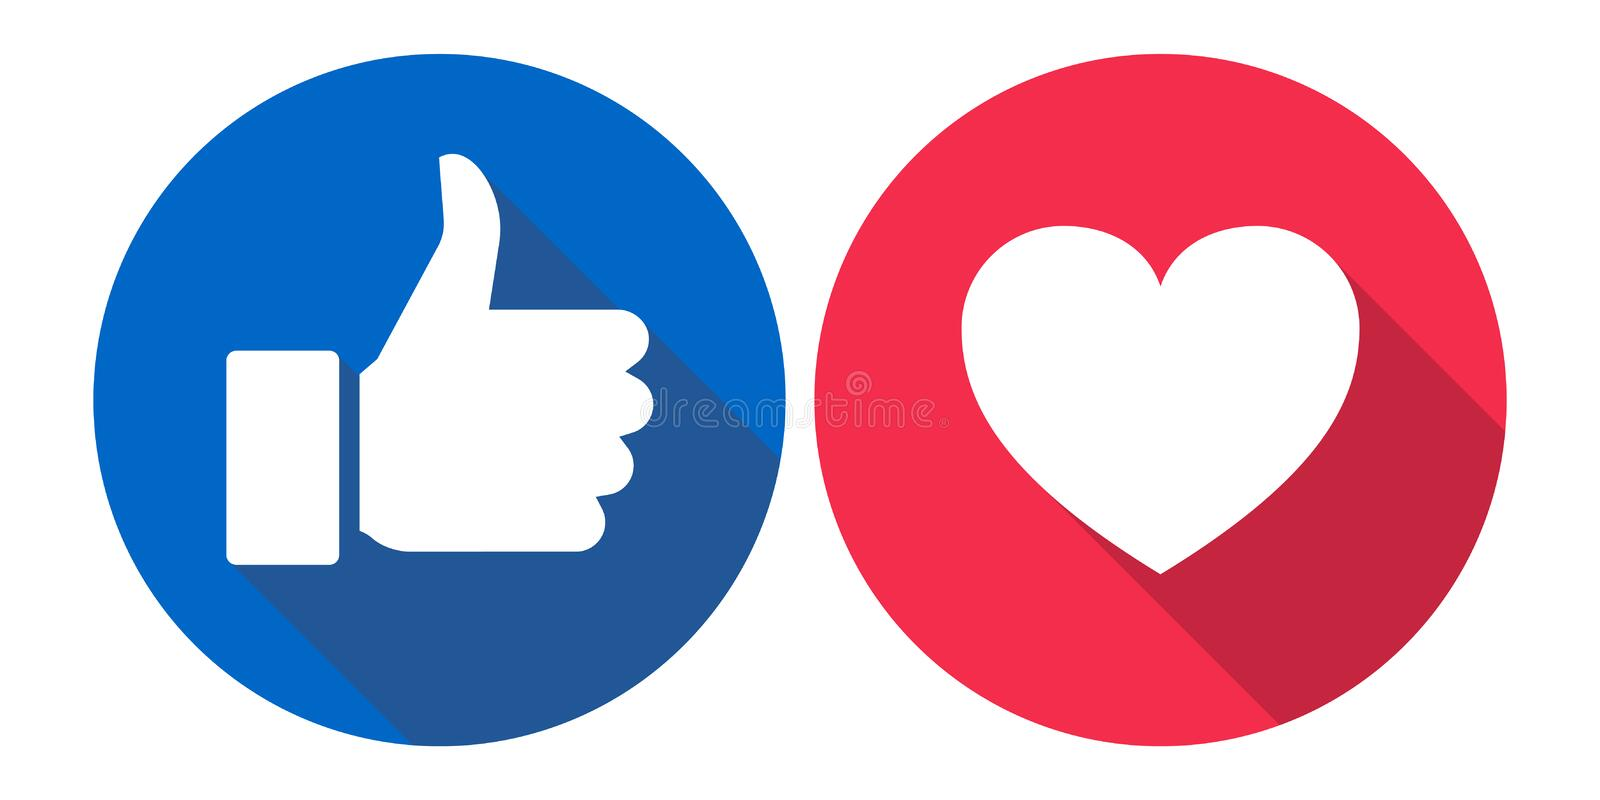 Facebook love and like icons colorful. Vector illustration of facebook love and like icons colorful on white background